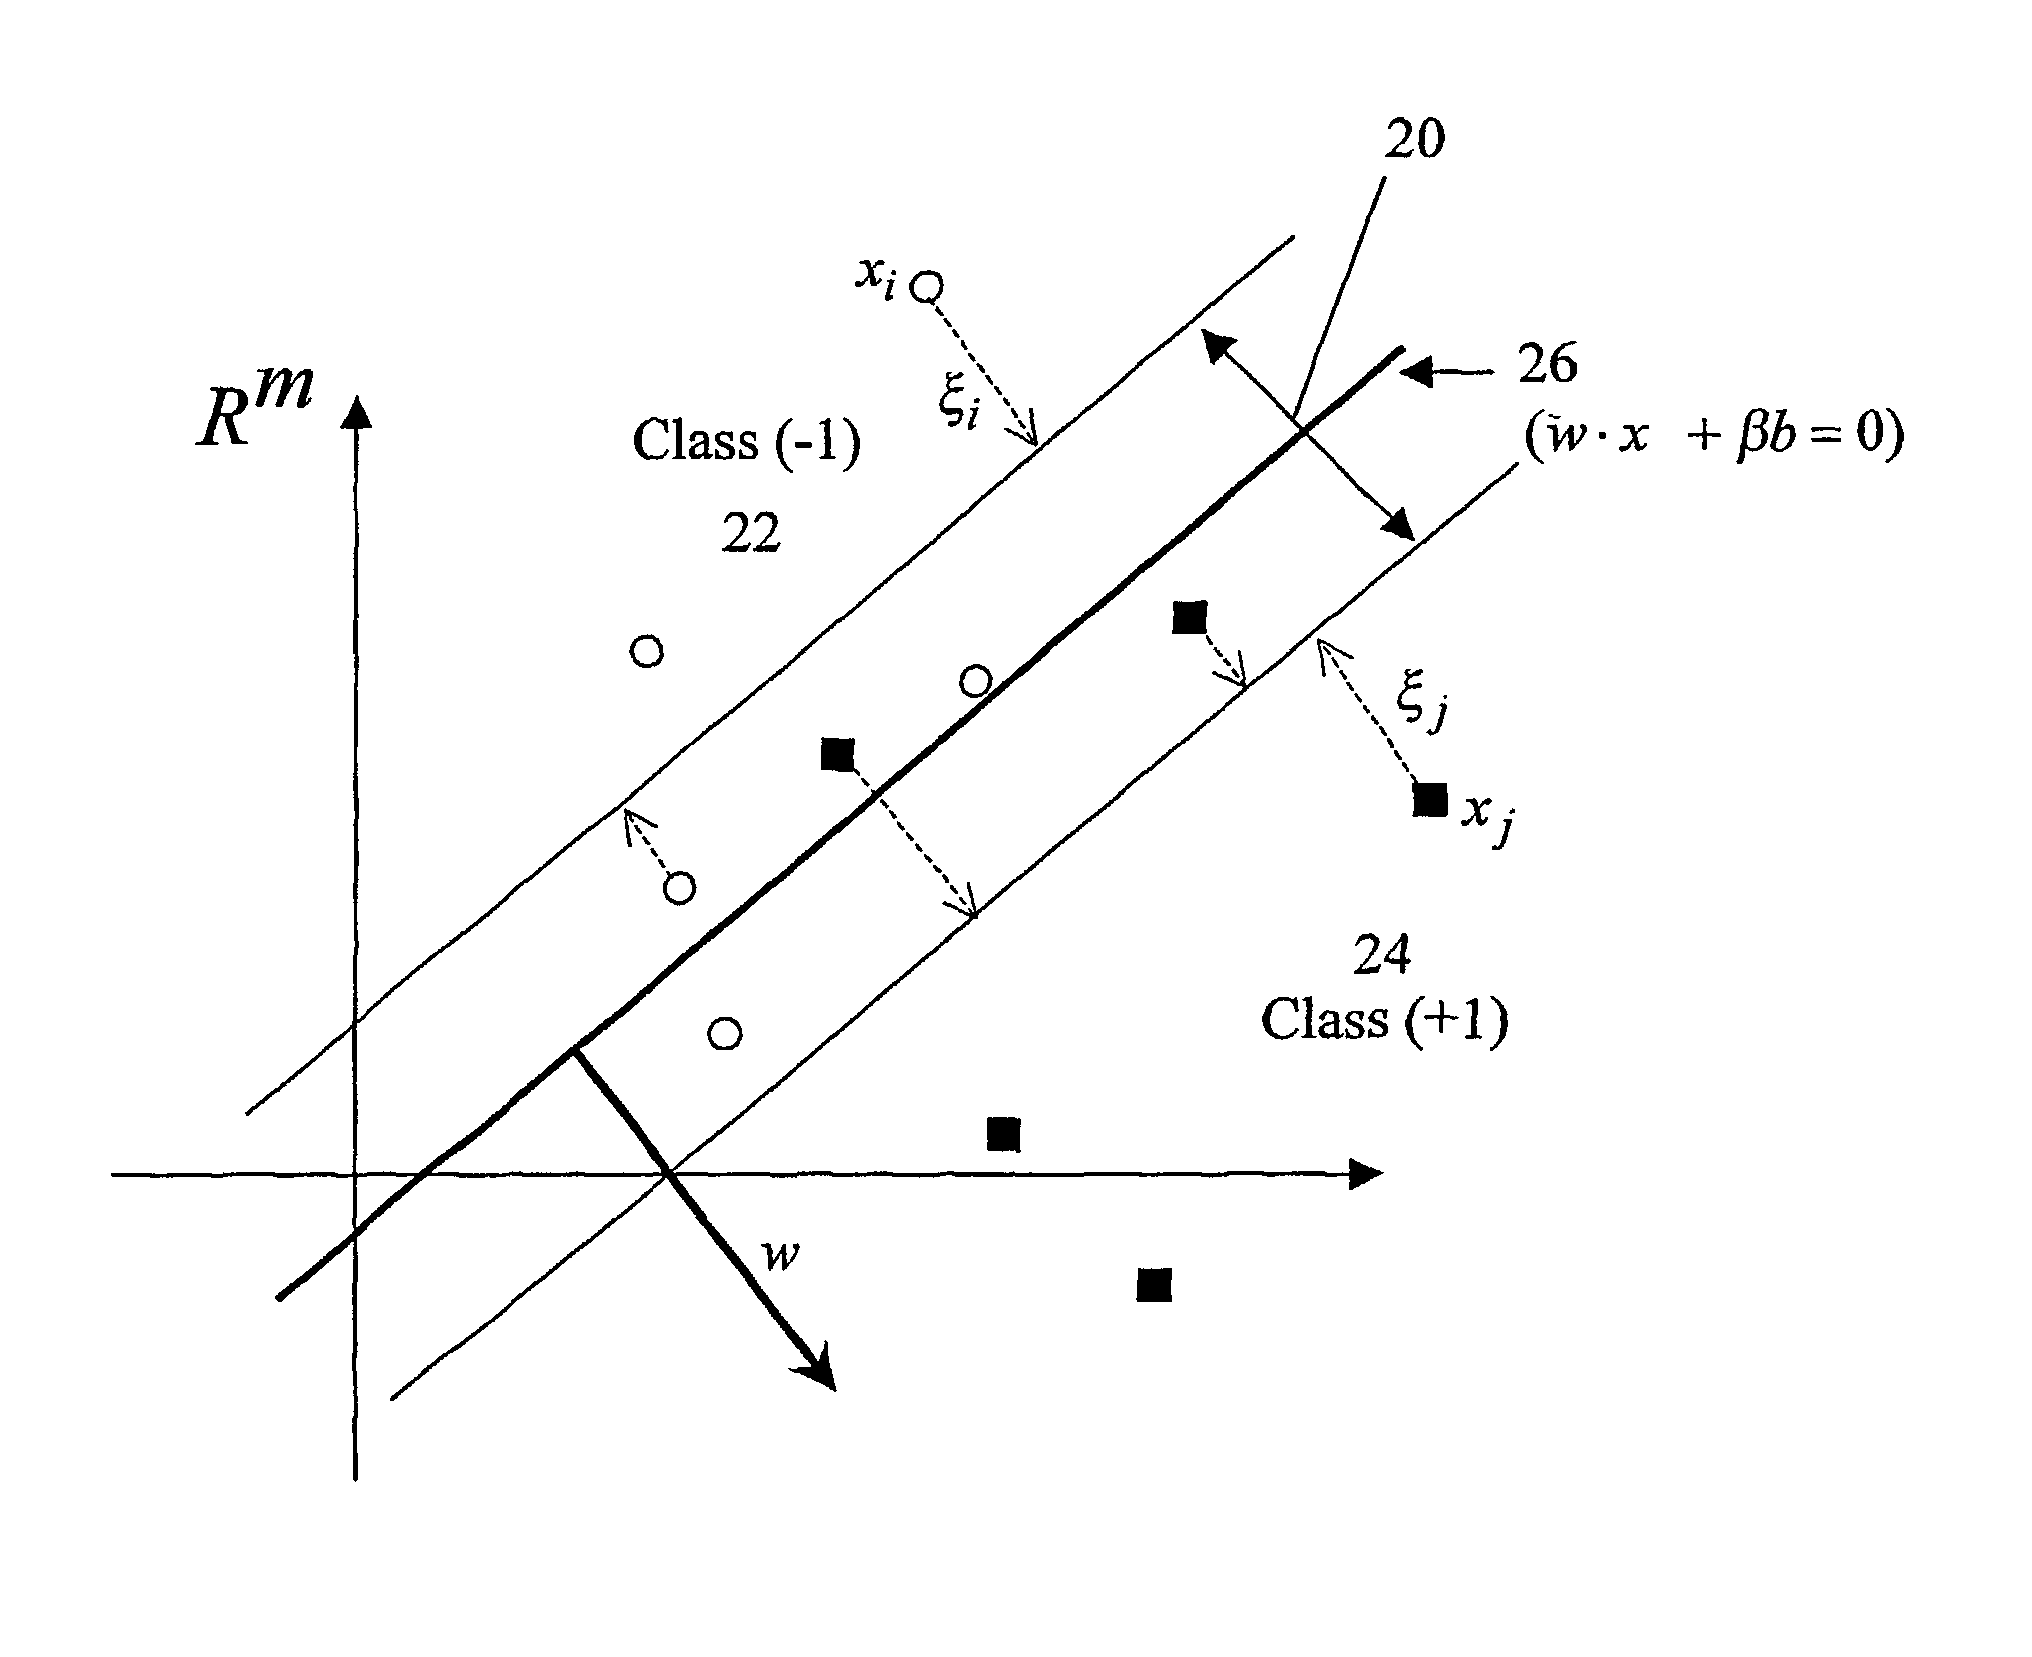 support vector machine 2 cs 8751 ml & kdd support vector machines 7 margins and pac learning • theorems connect pac theory to the size of the margin • basically, the larger the margin, the better the.